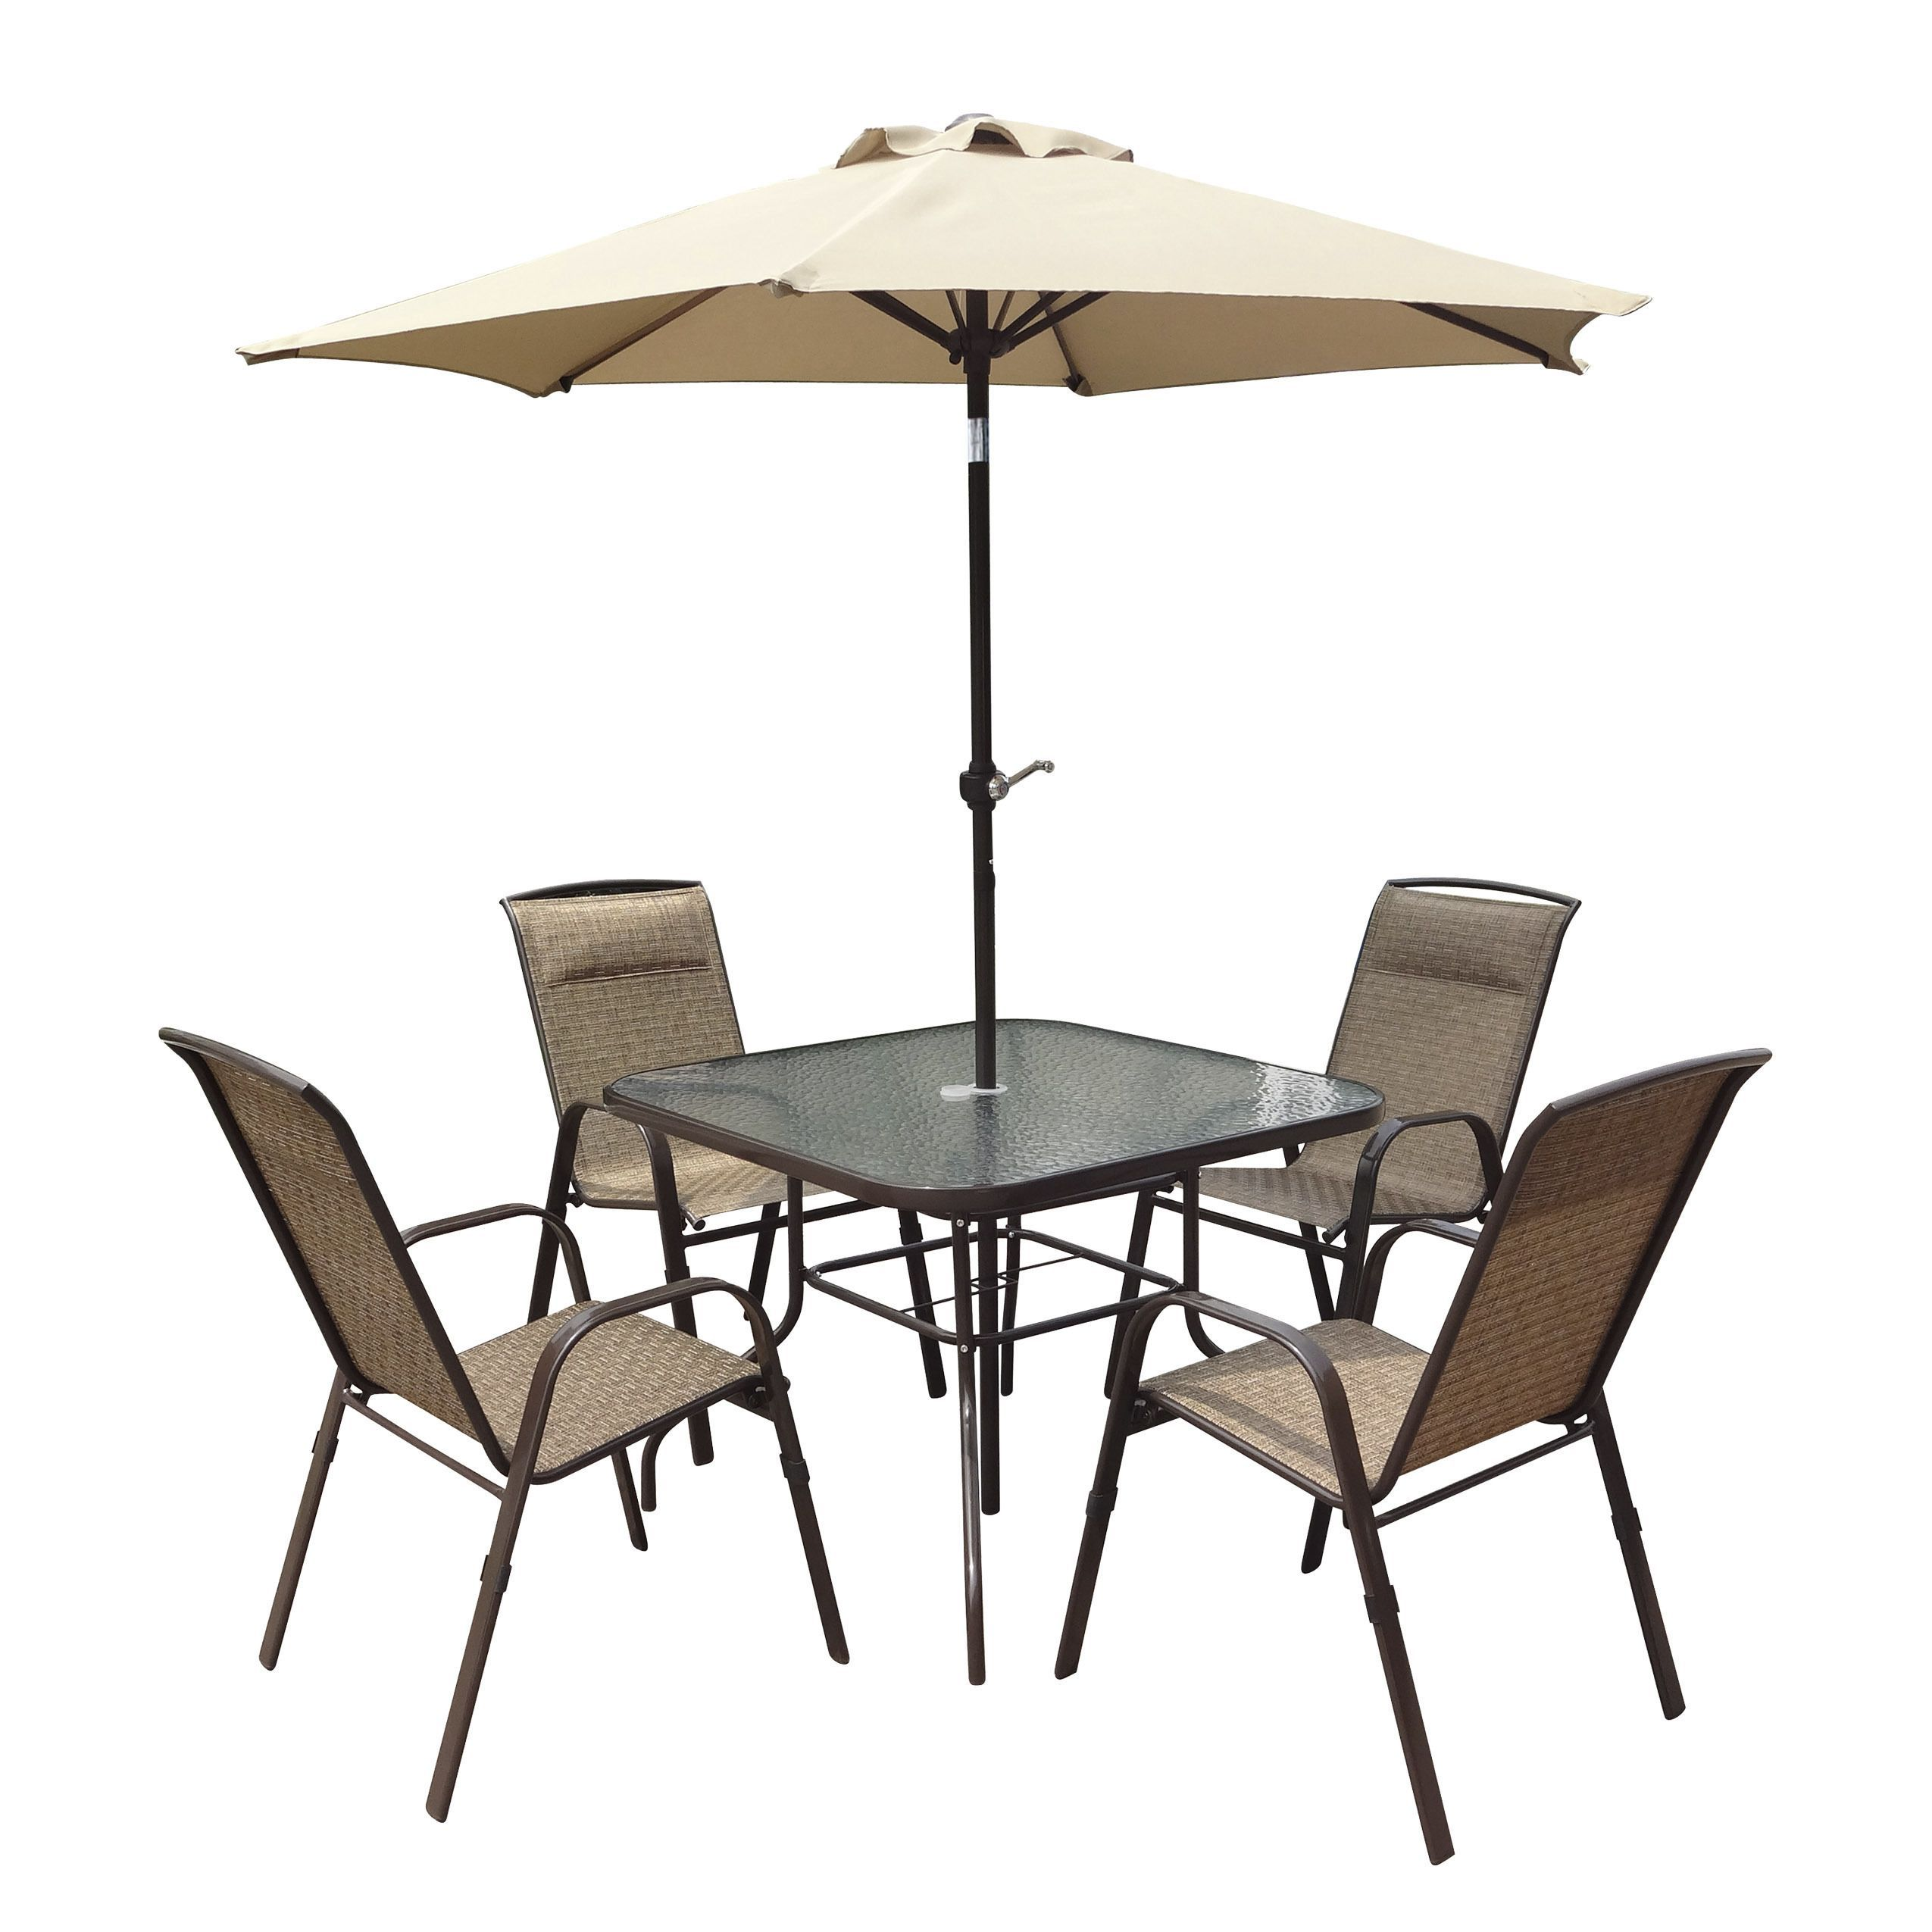 wood table set patios depot full on high lowes chairs of garden patio groupon size home accessories lawn piece walmart outdoor furniture clearance and gazebos